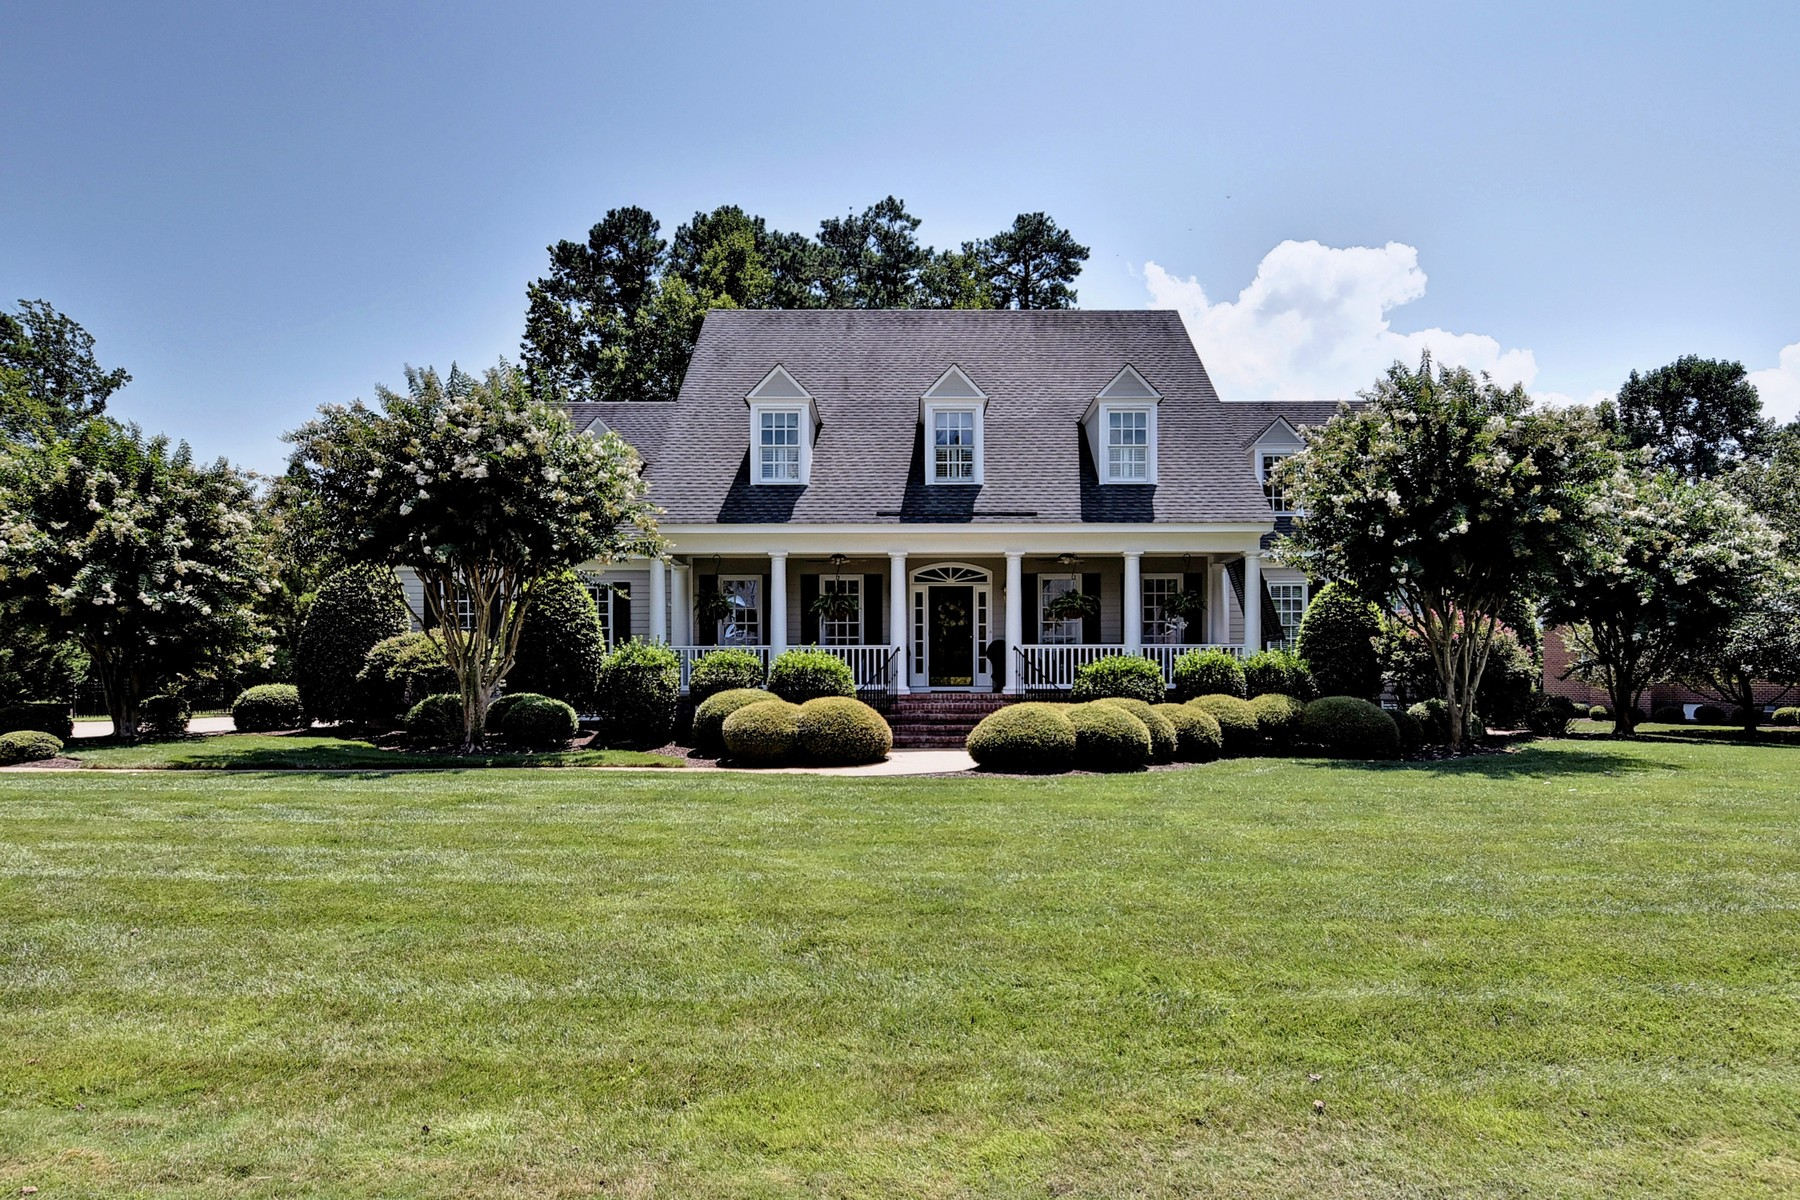 Single Family Homes for Active at 121 John Browning Williamsburg, Virginia 23185 United States